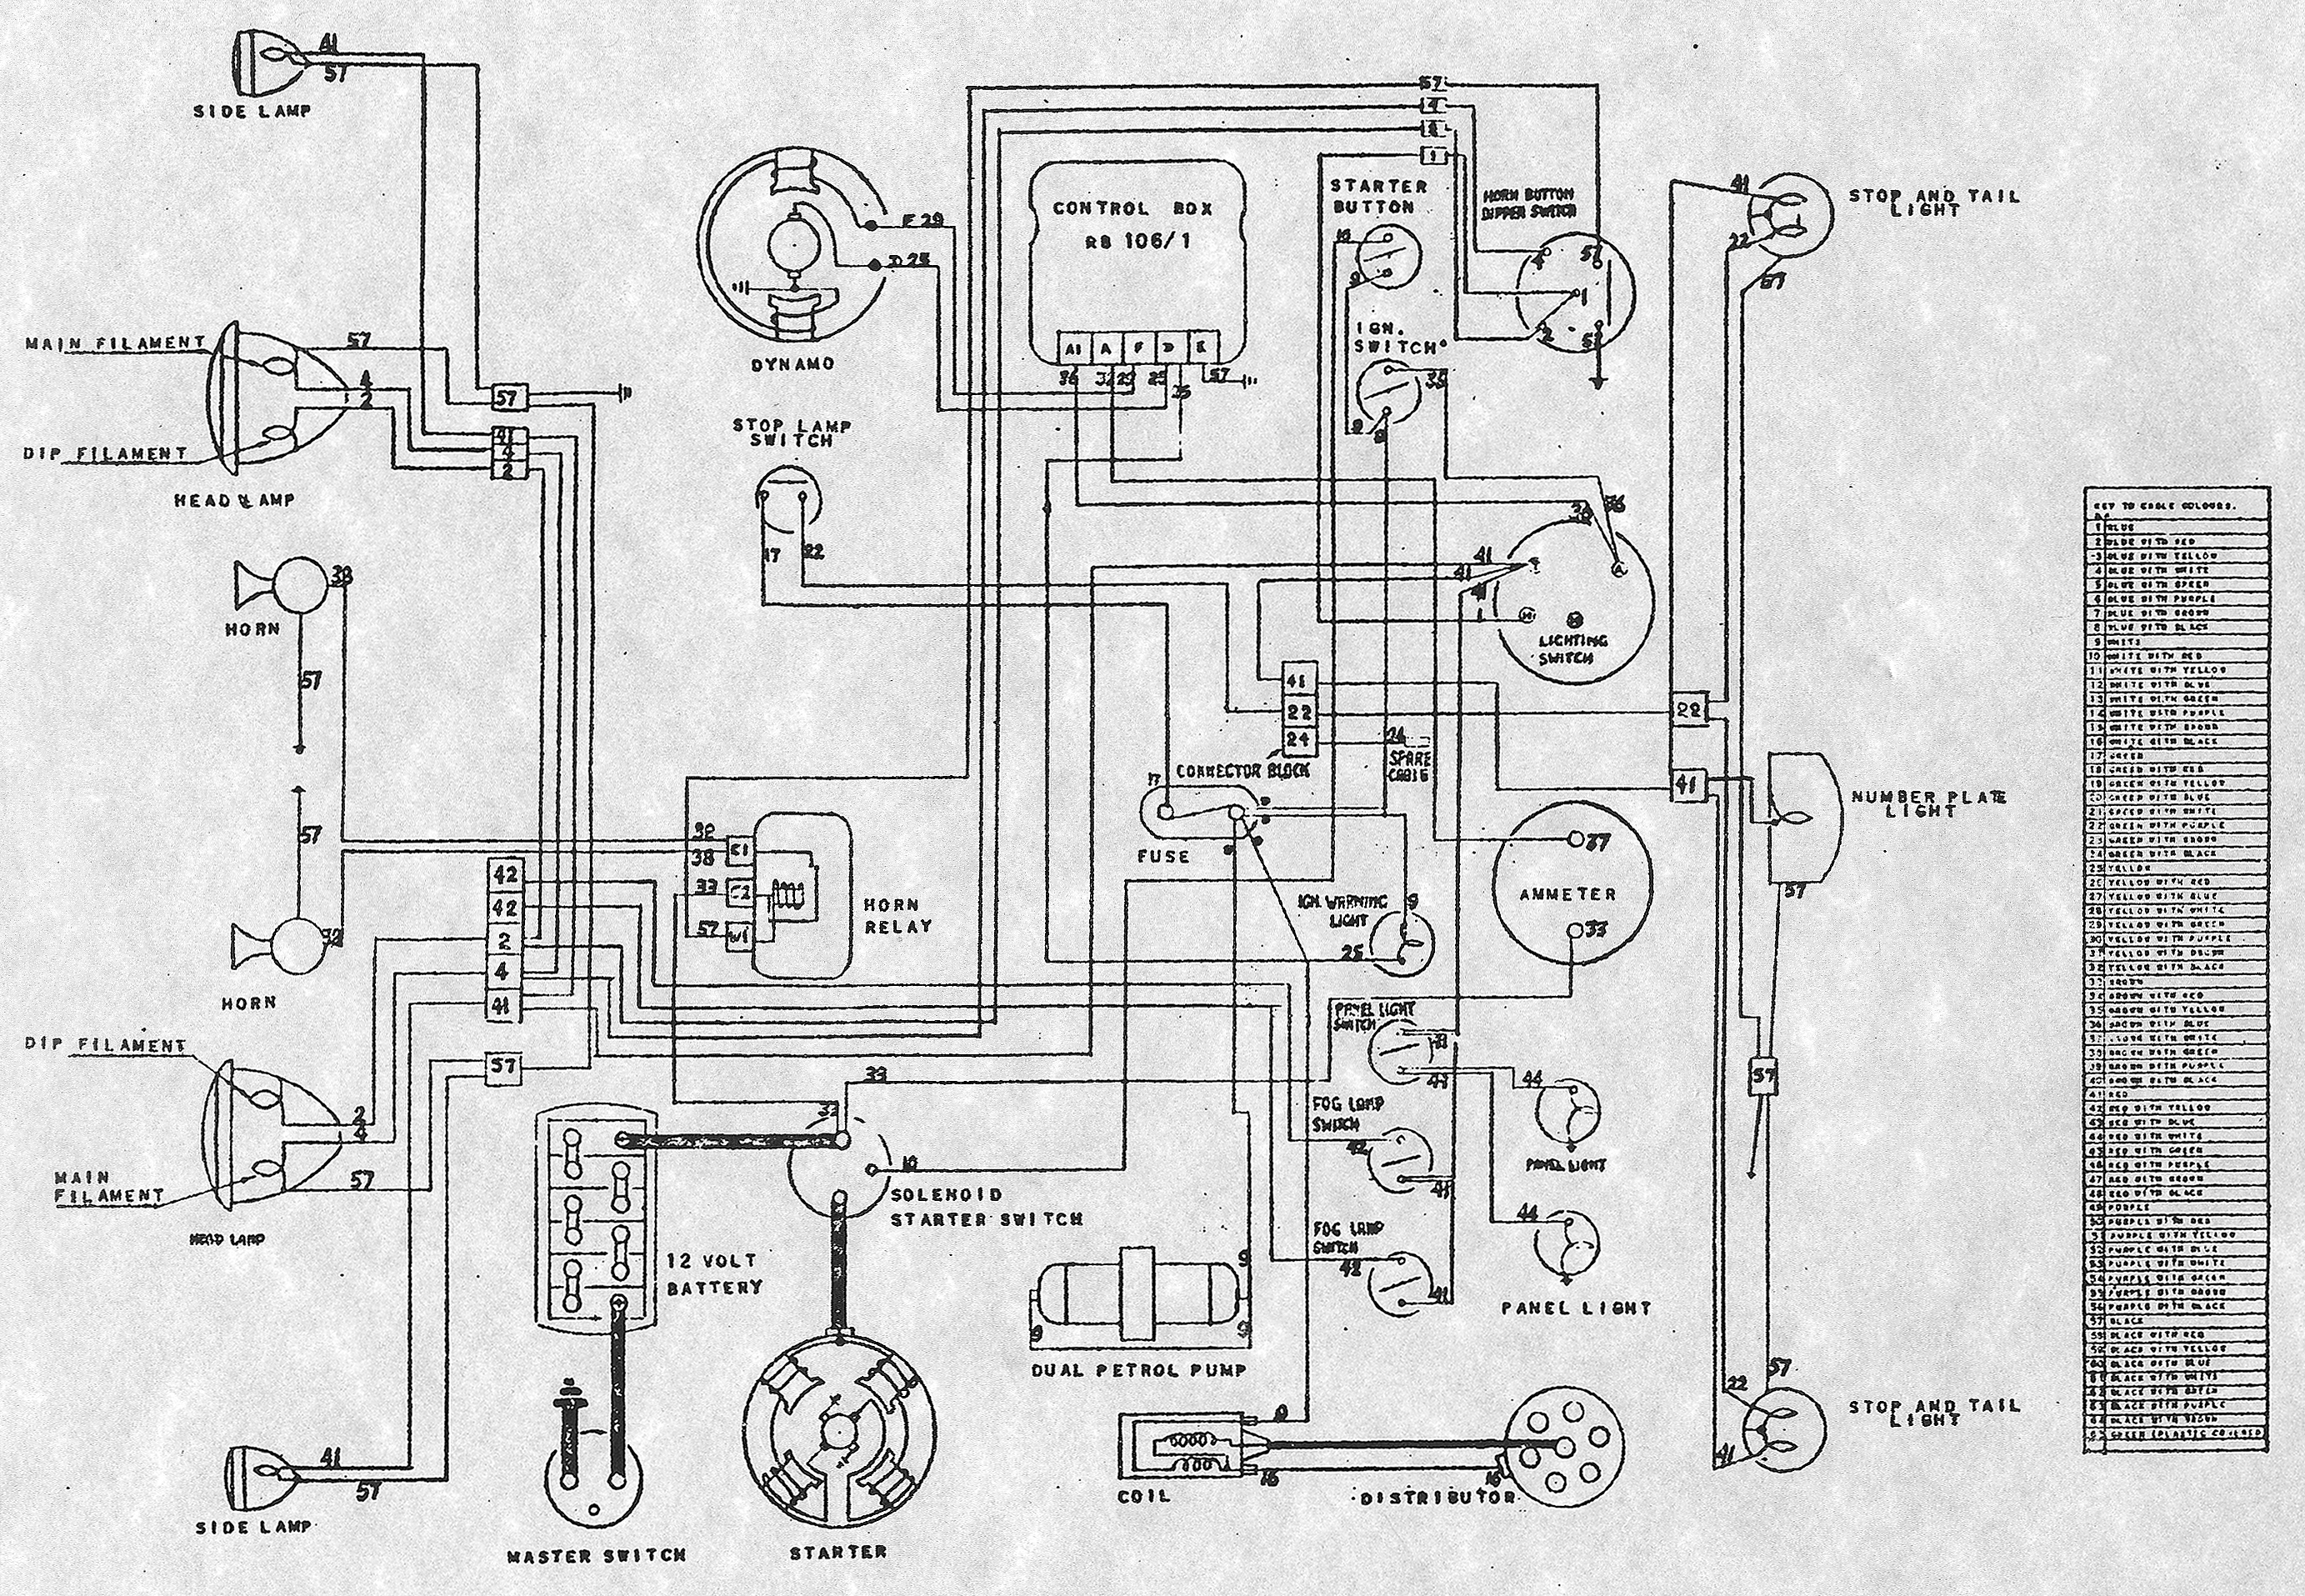 Audi B7 Wiring Diagram as well Tweeter Wiring Diagram moreover P 0900c15280060e44 also John Deere 235 Wiring Diagram besides Bobcat Battery Location. on austin healey wiring diagrams